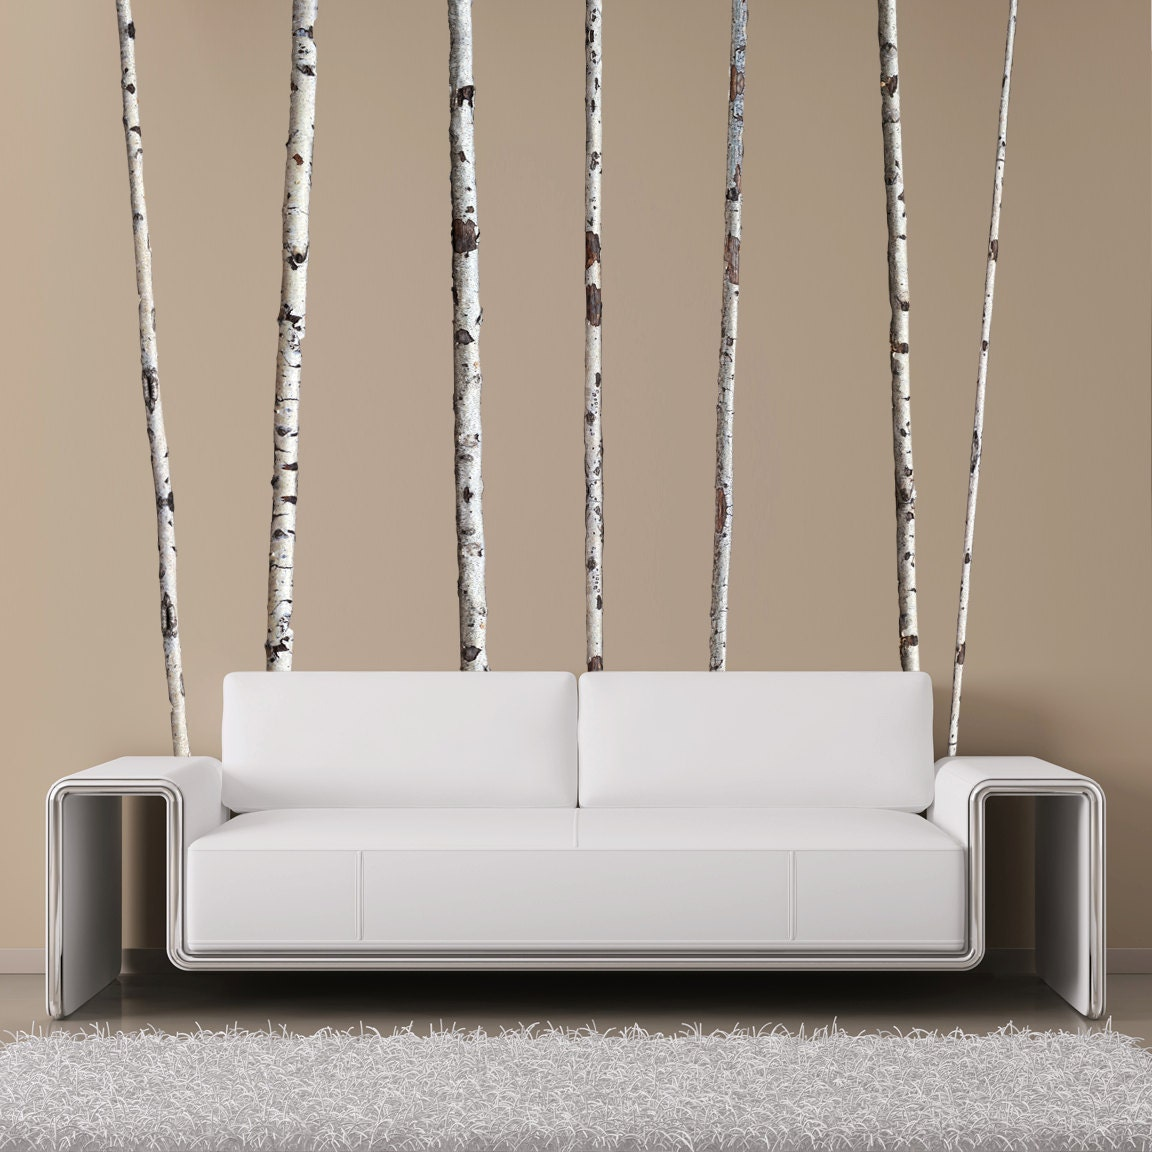 Summer Birch Trees Wall Decals 9 Ft Tall Quantity Of 7